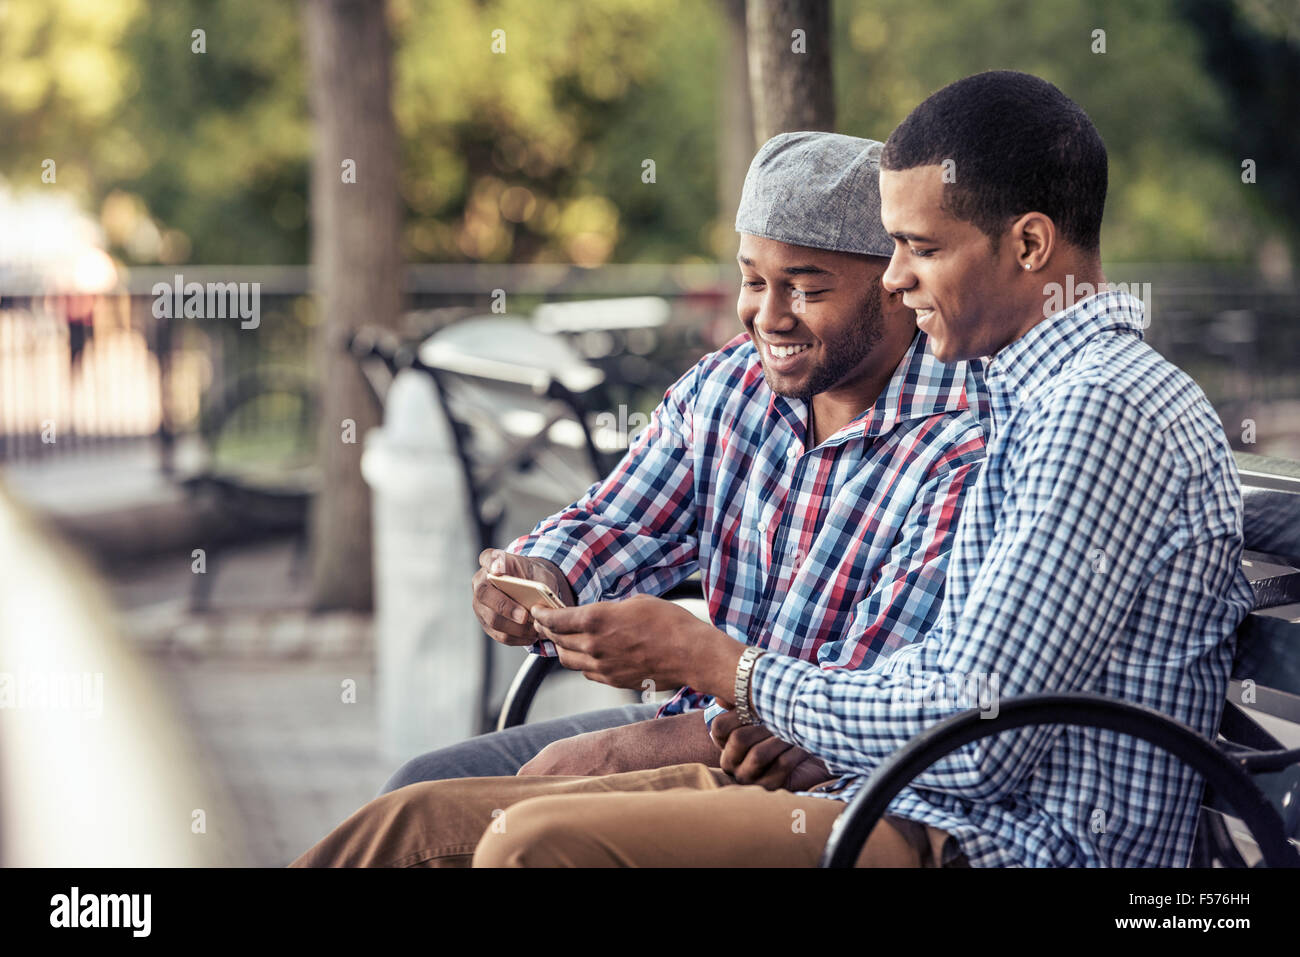 Two men sitting in a park, looking at a smart phone Stock Photo